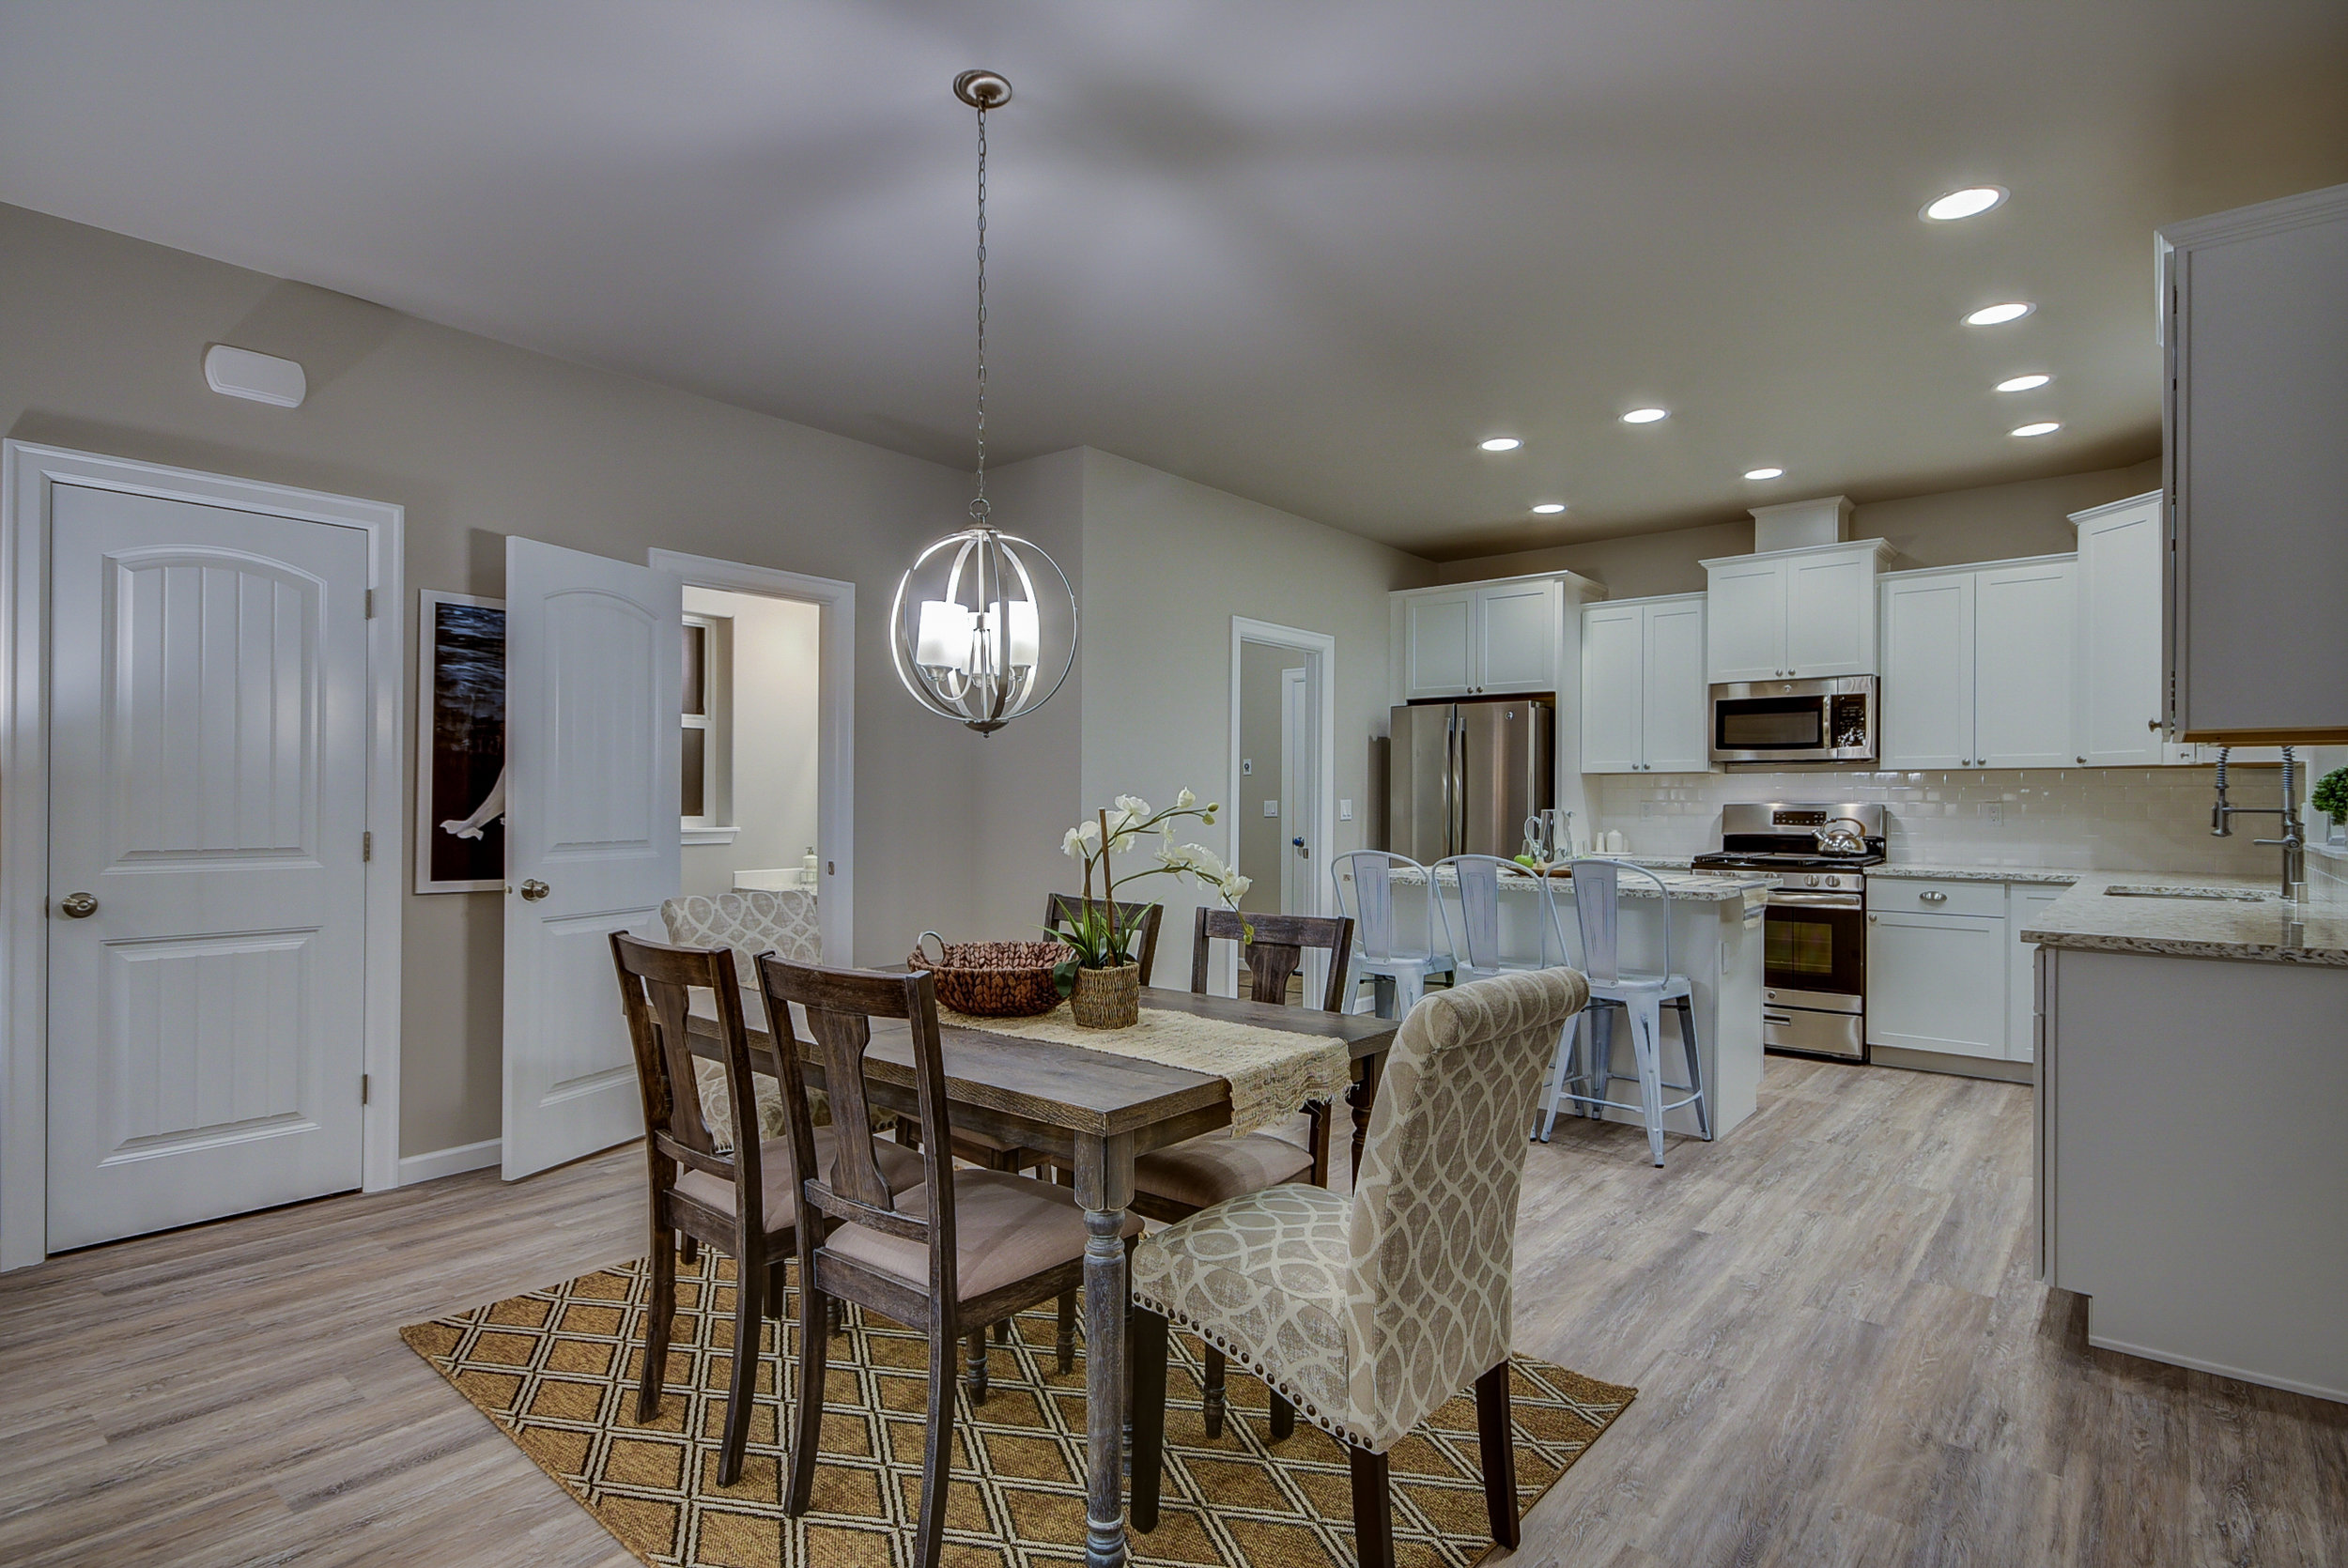 Entertain with confidence in this dining space! Spacious & versatile...ready for casual coffee talk, or a sparkling fête...